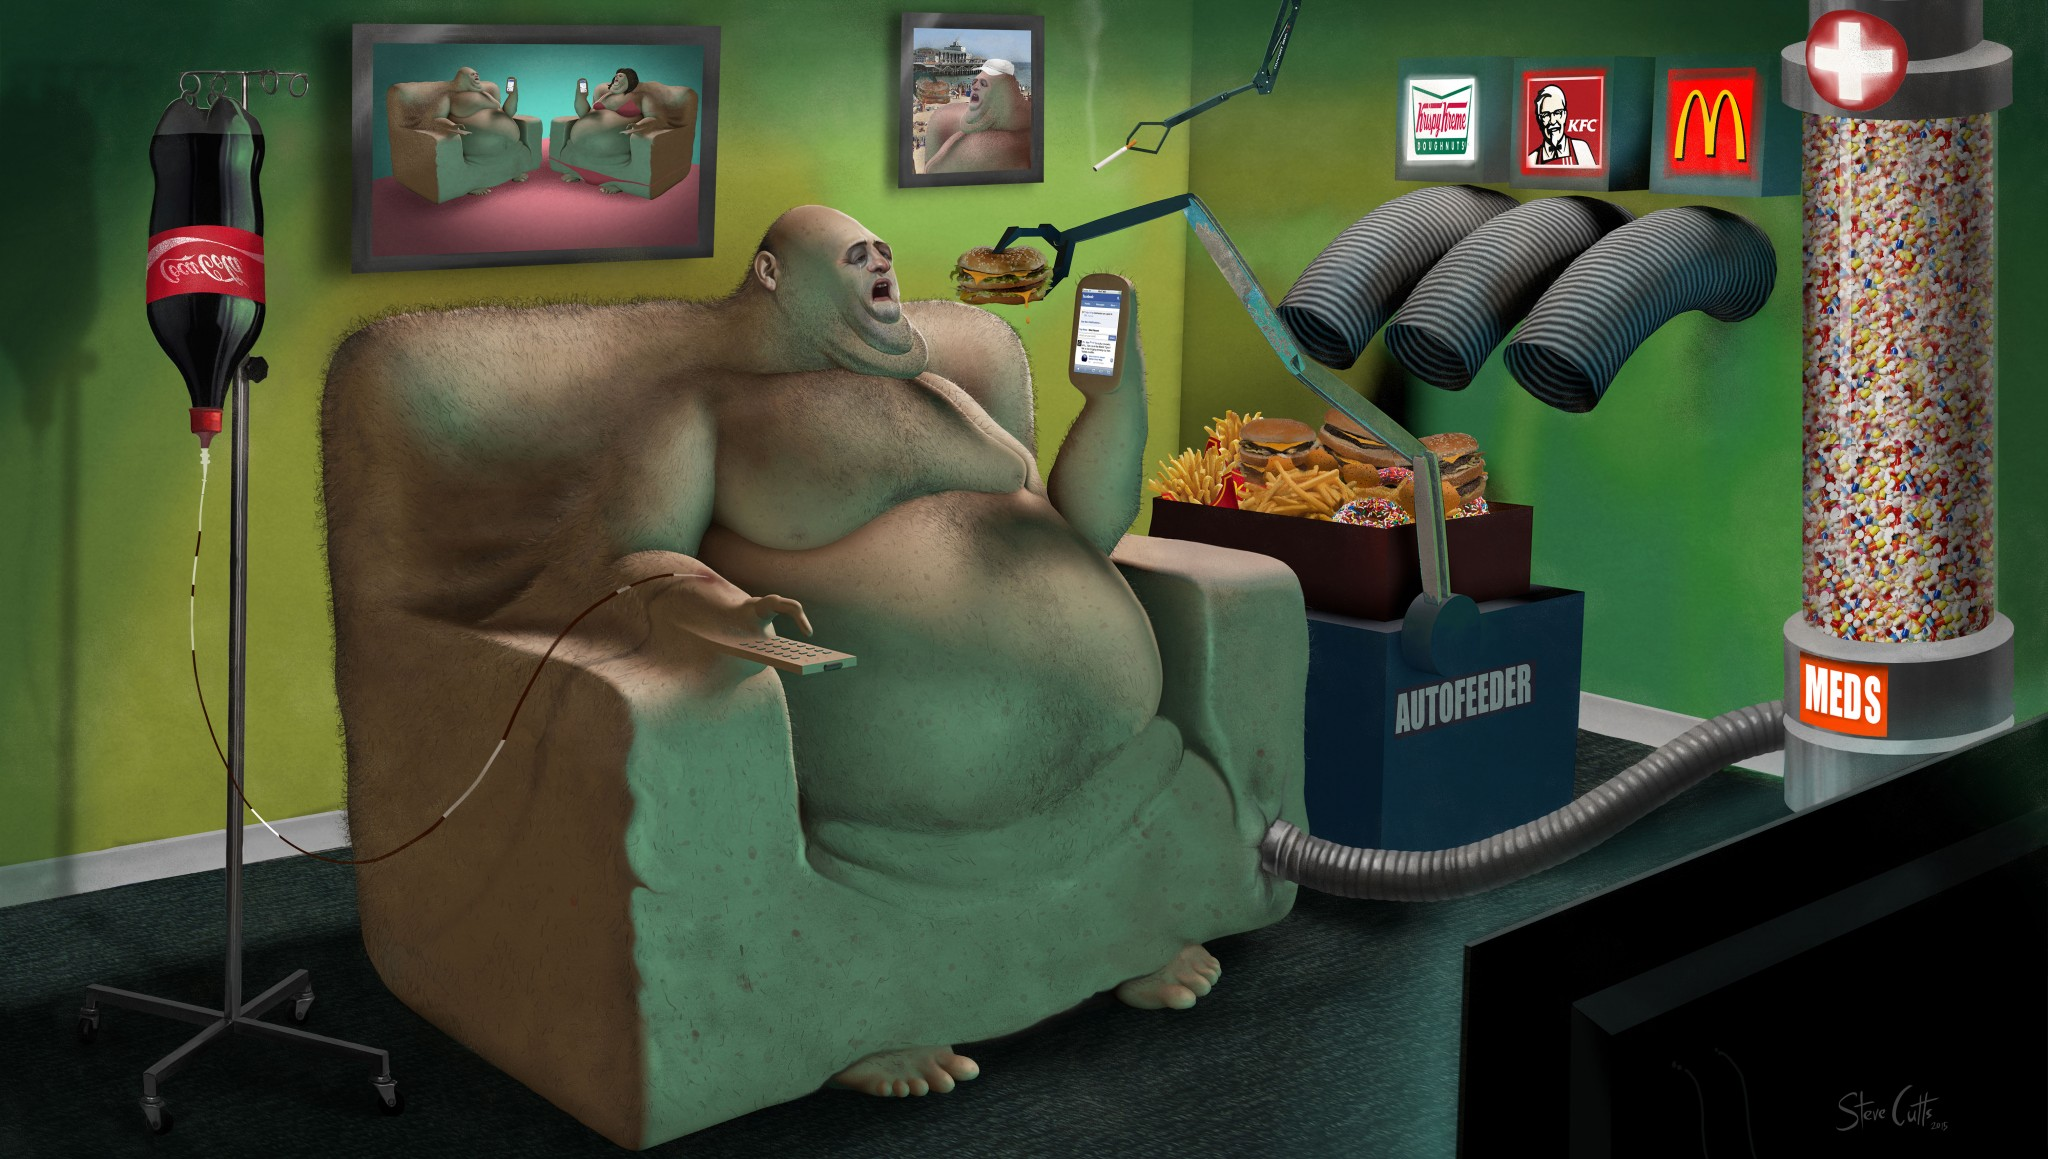 Evolution Steve Cutts illustration Loaded